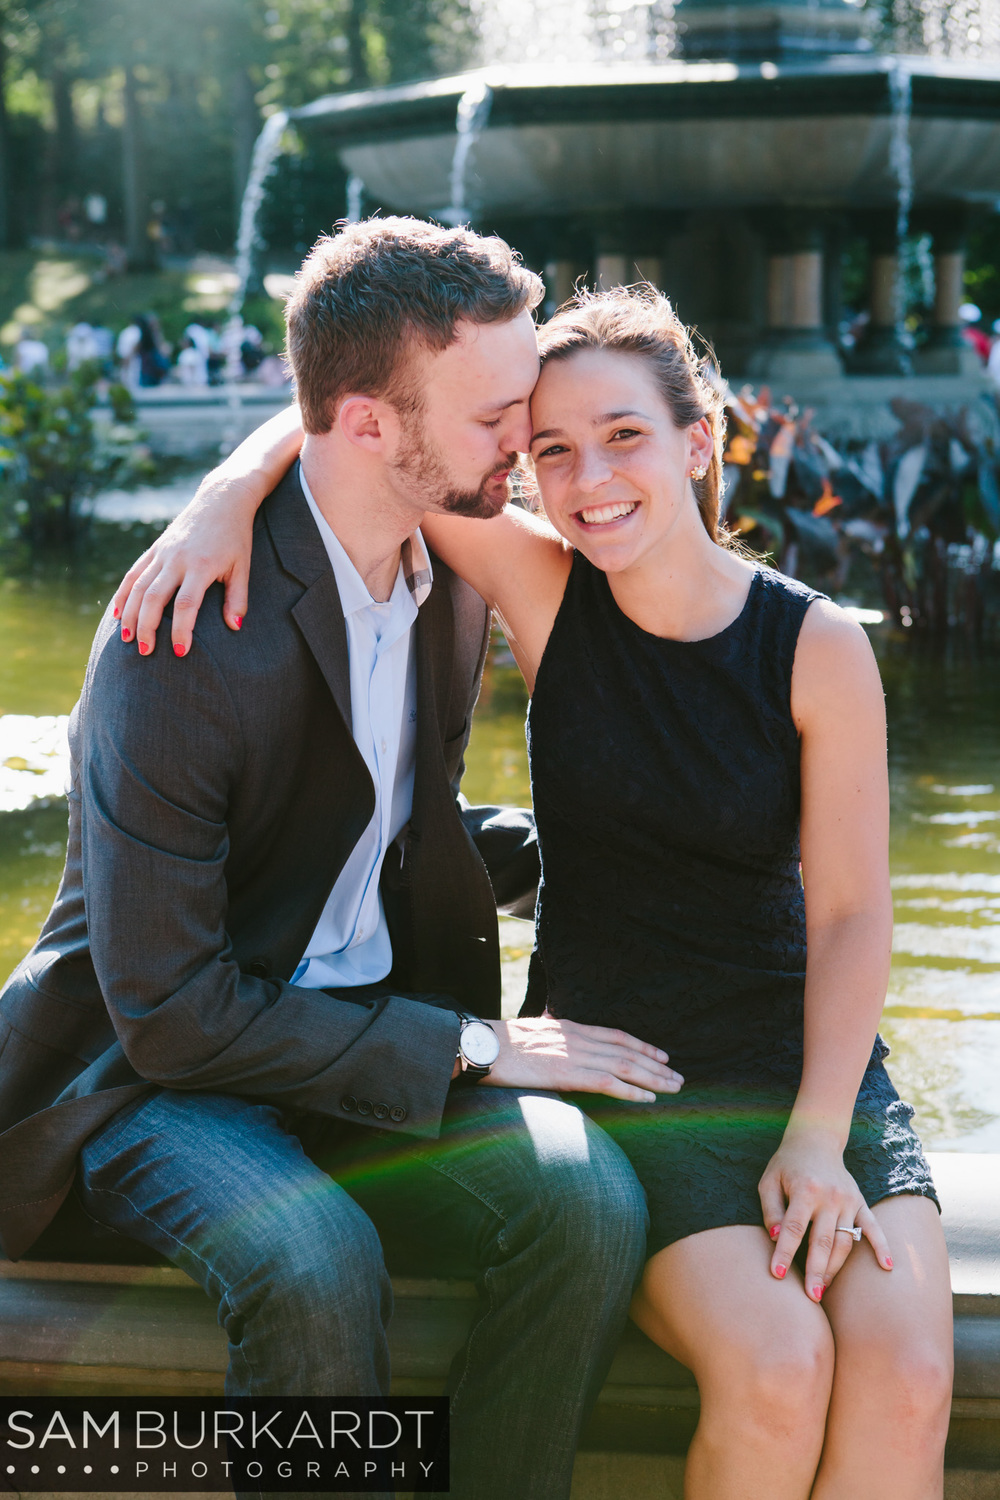 sburkardt_new_york_proposal_engagement_central_park_012.jpg